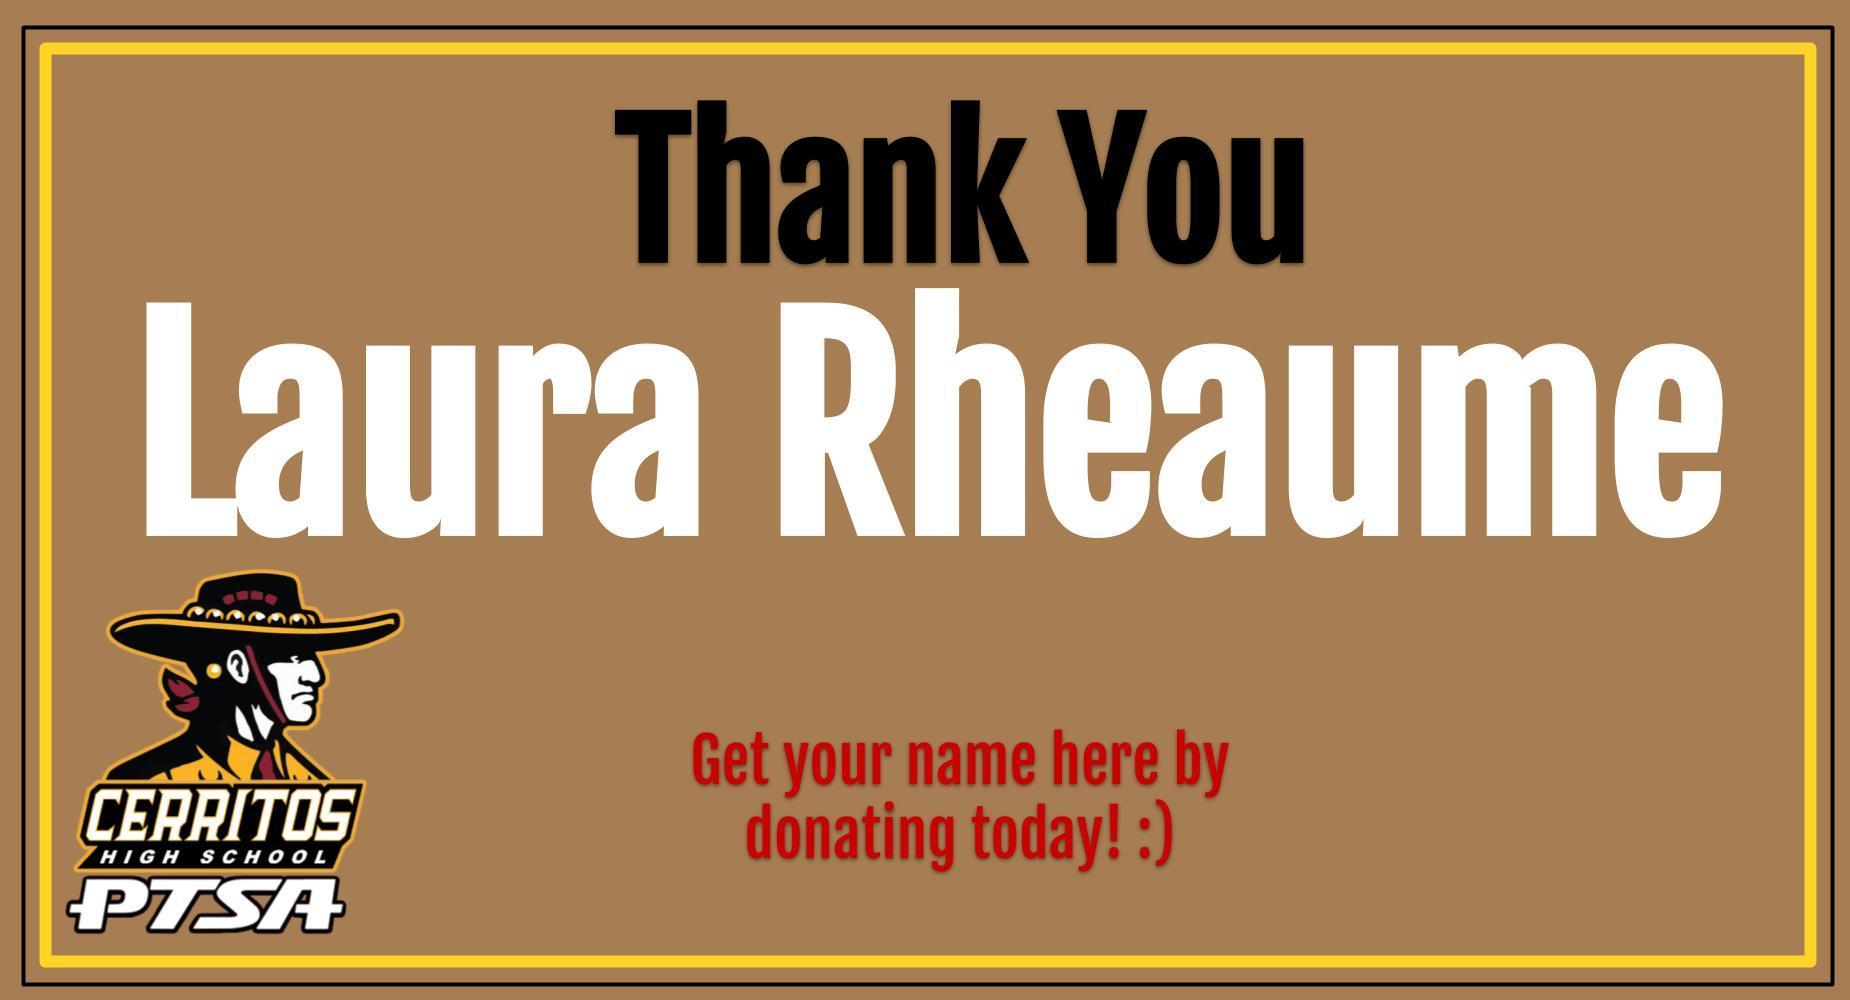 Thank you Laura Rheaume!